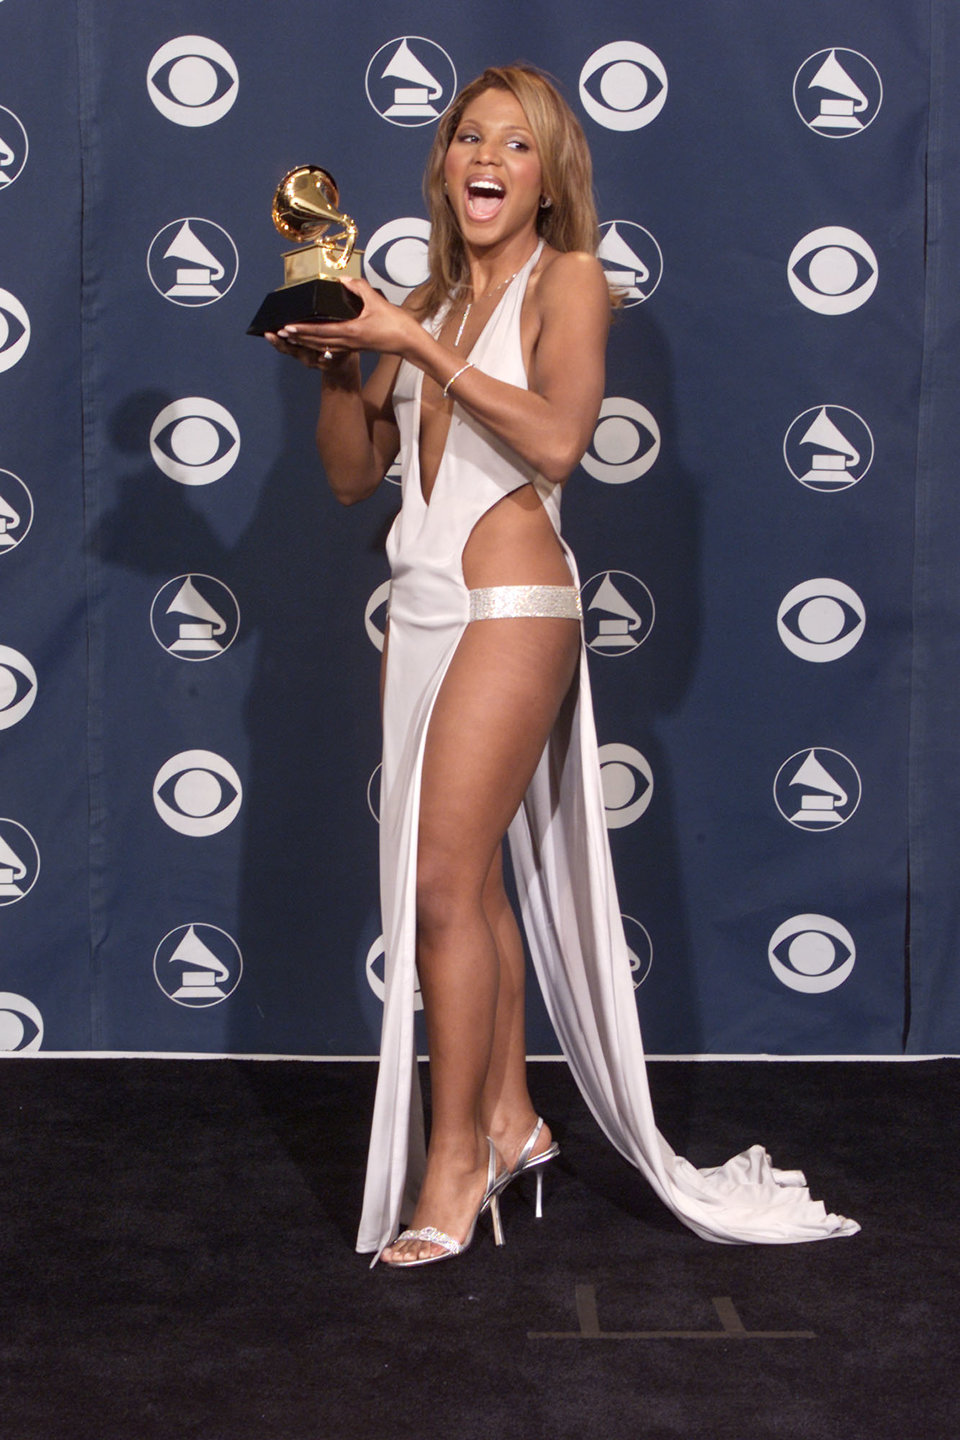 toni braxton broke the mold back in 2001 when she wore this white dress to the grammys